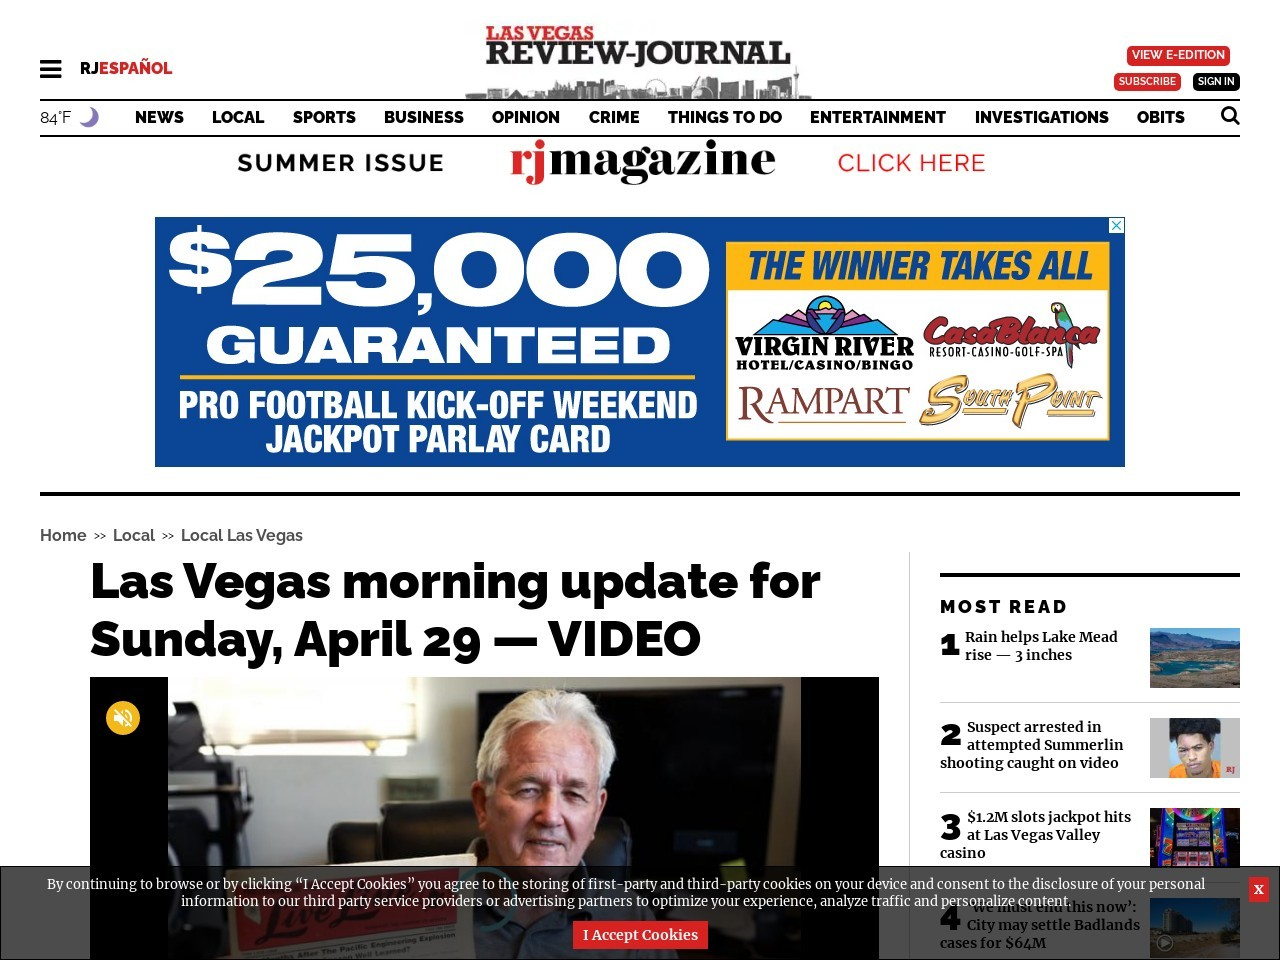 Las Vegas morning update for Sunday, April 29 — VIDEO